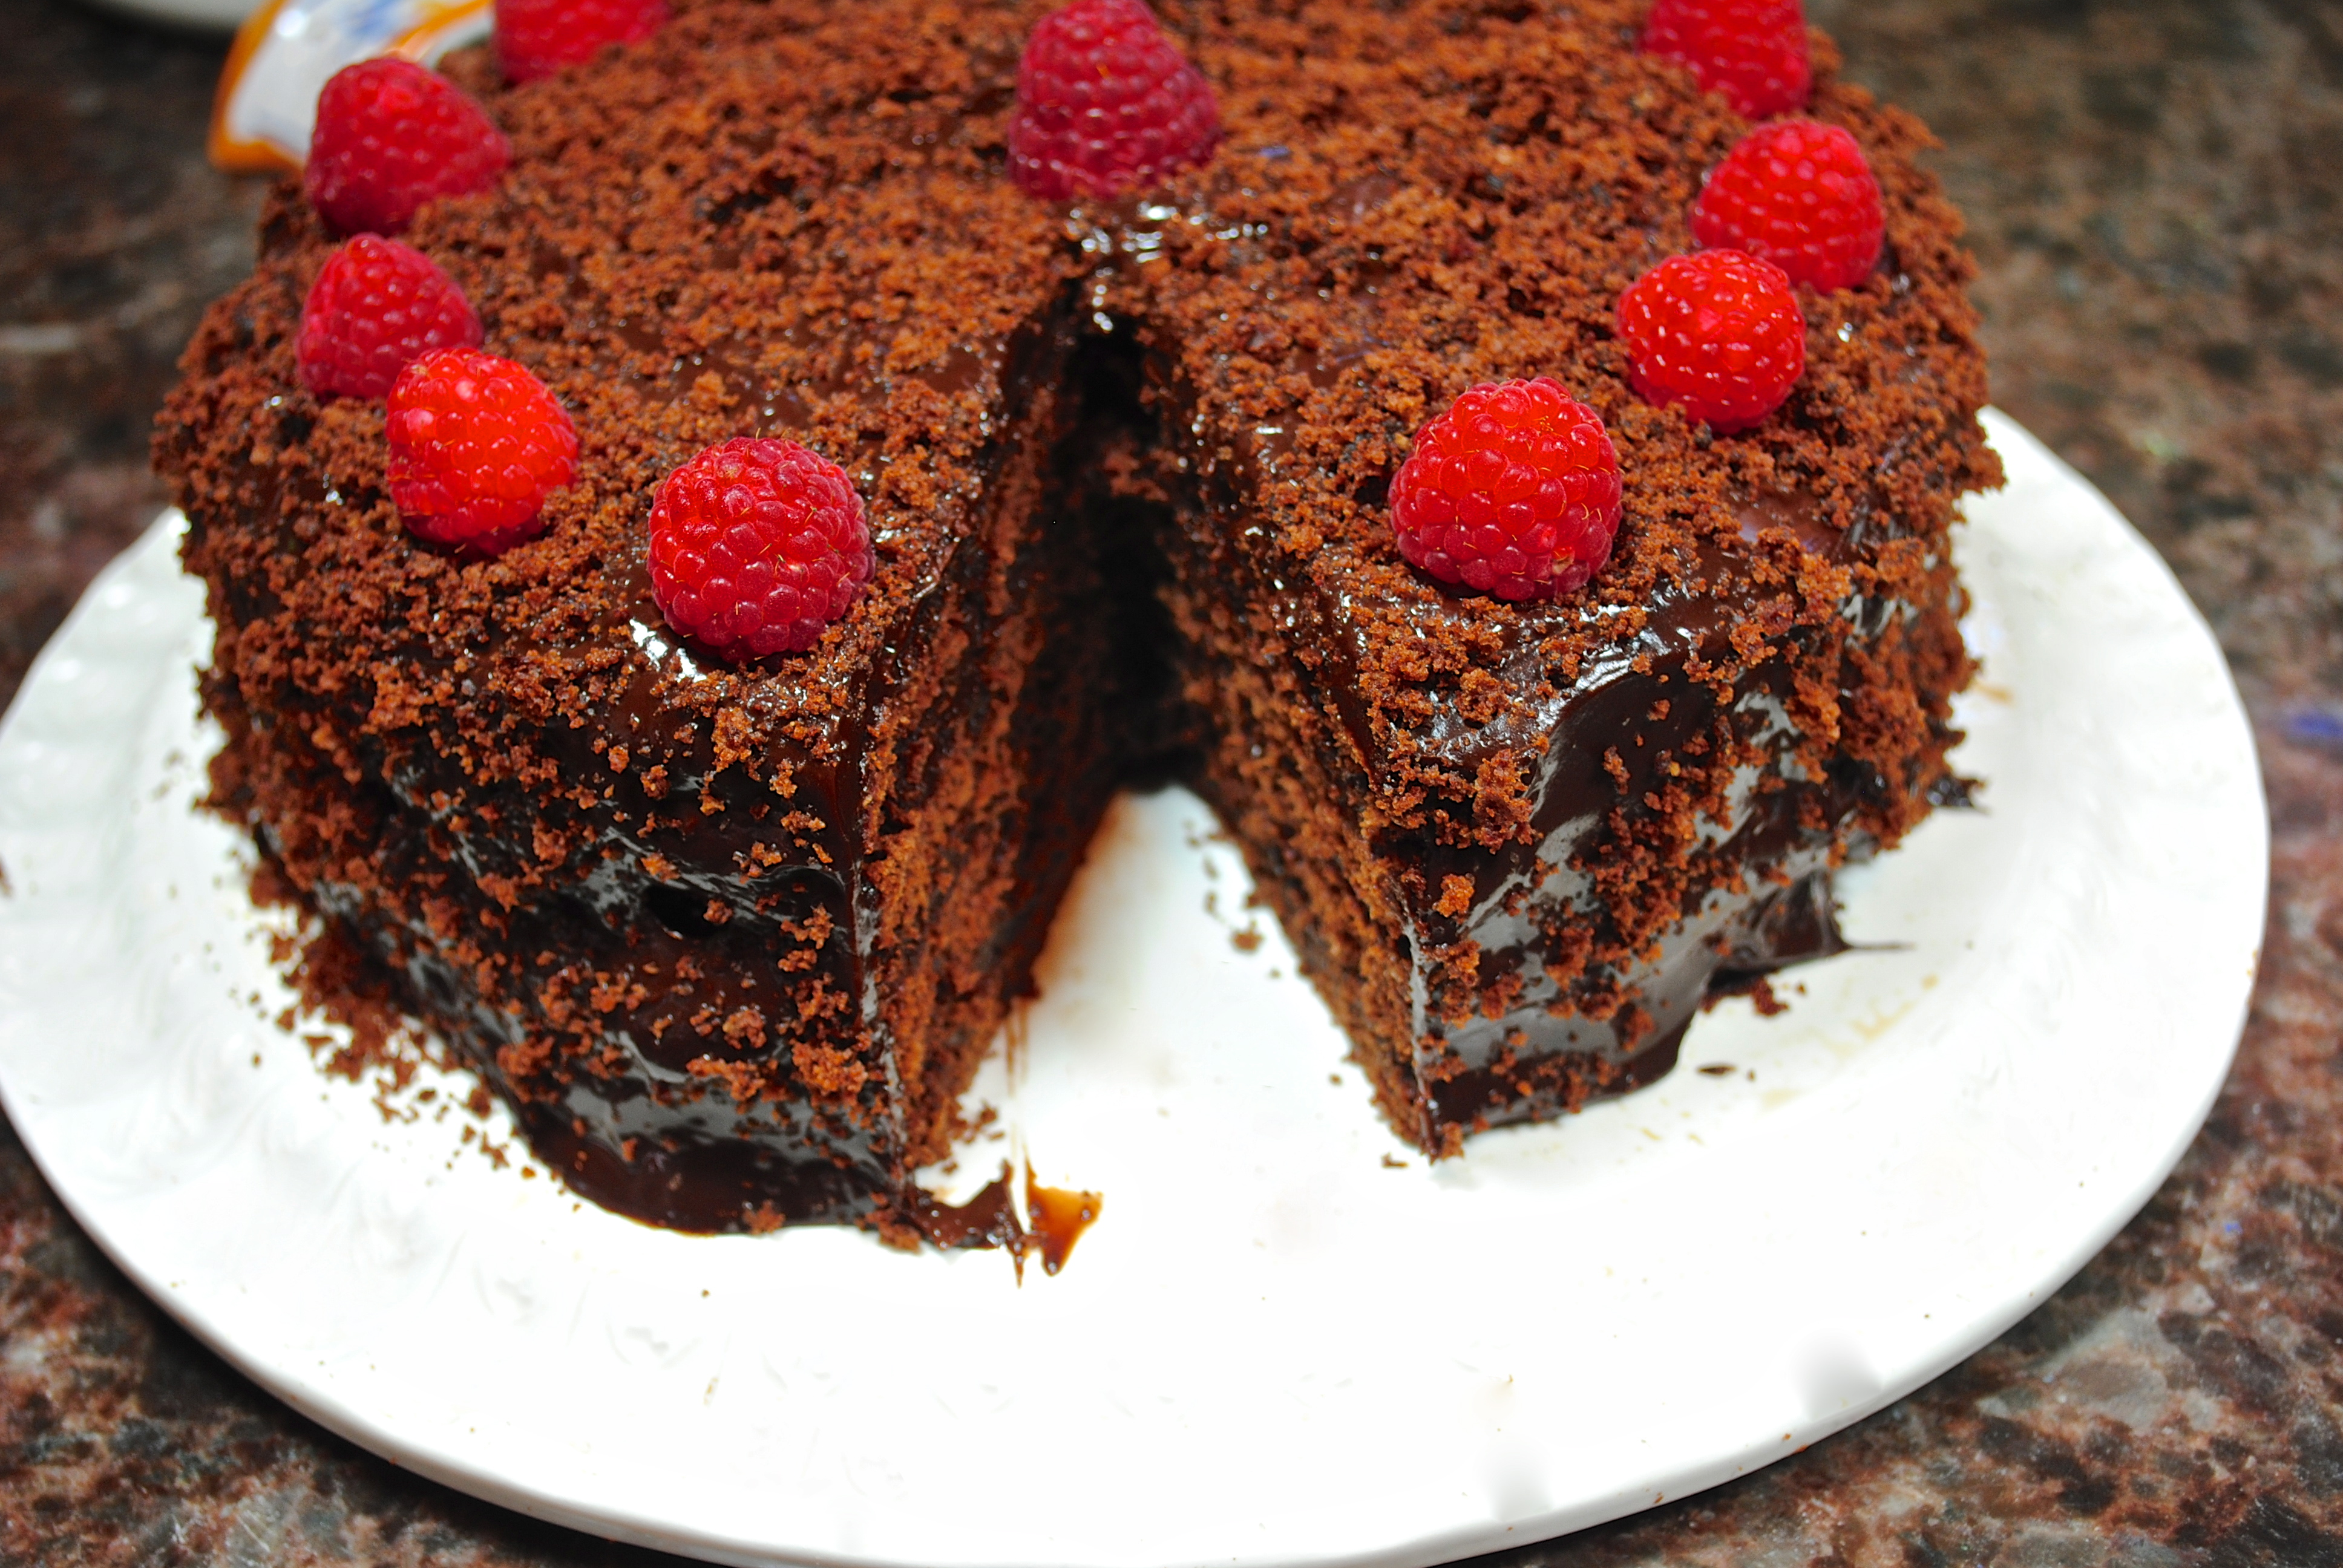 Gale Gand Chocolate Blackout Cake